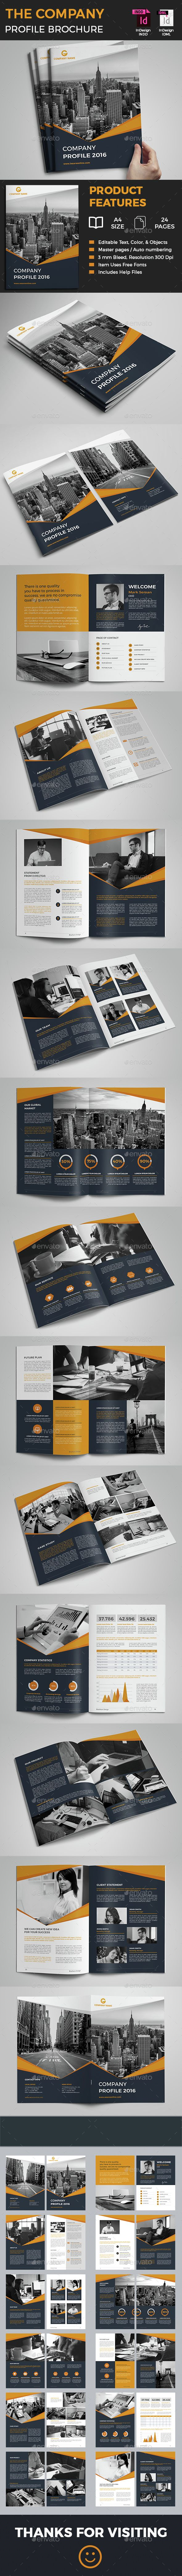 The Company Profile Brochure Template InDesign INDD. Download here: http://graphicriver.net/item/the-company-profile/15183553?ref=ksioks